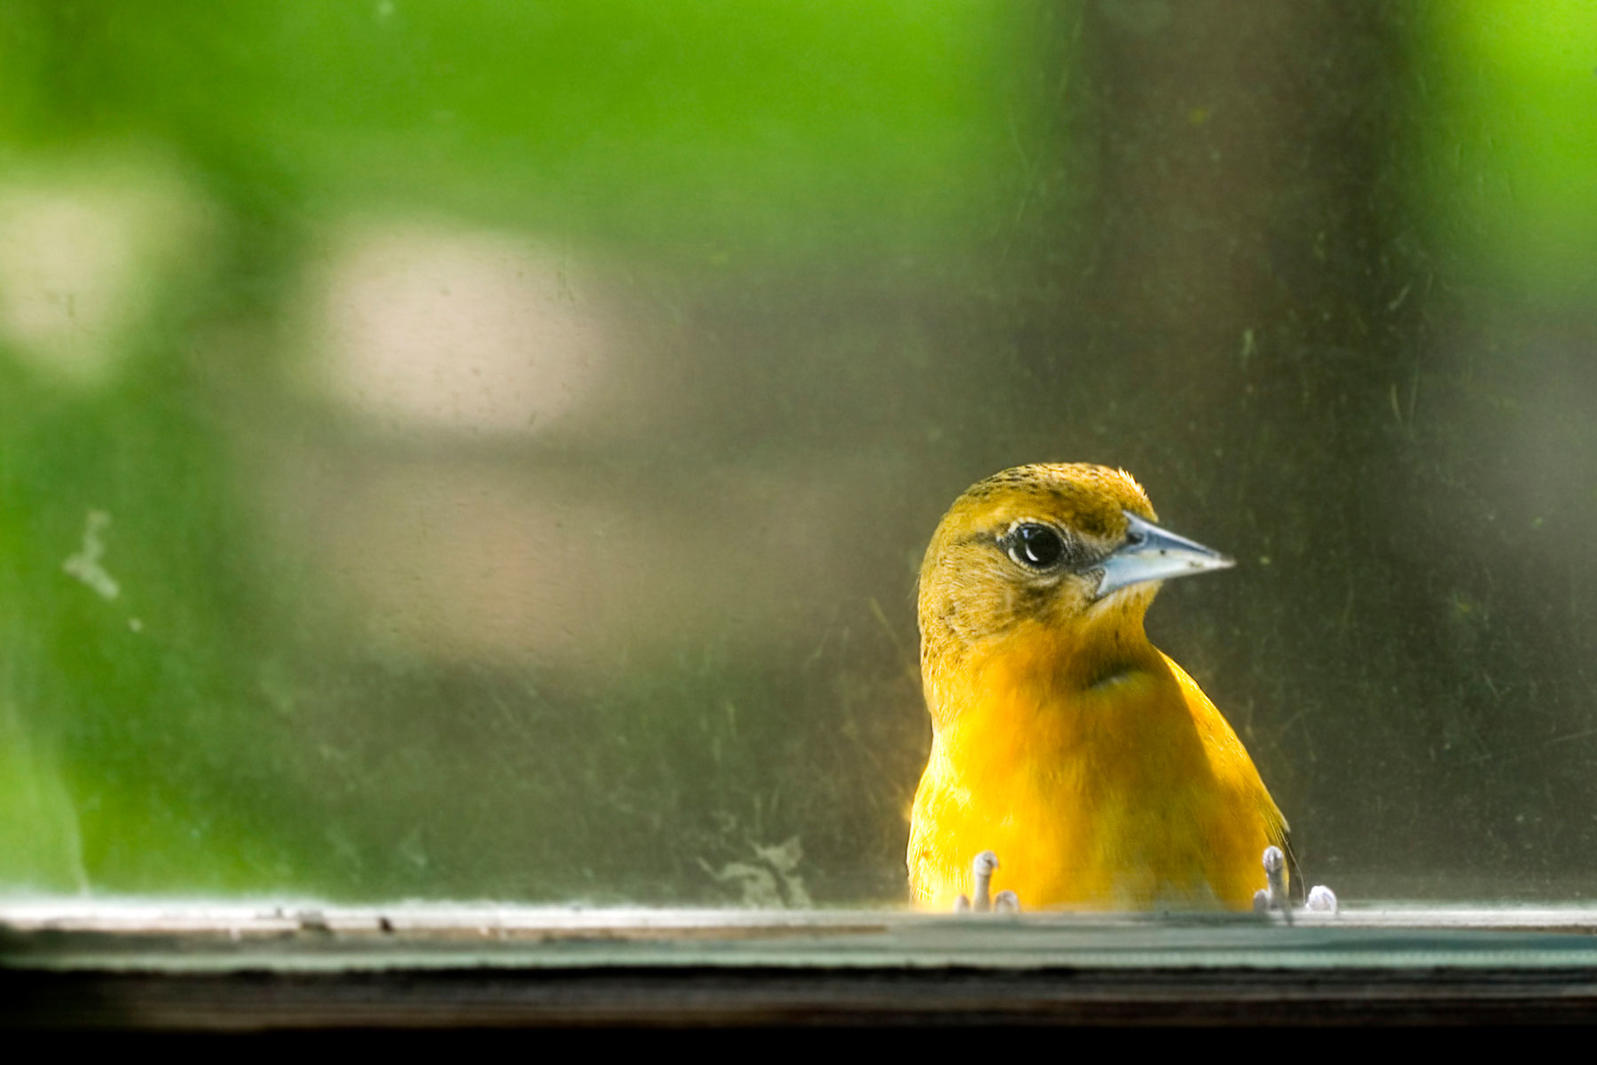 Sometimes, even a female Baltimore Oriole can set off the FOMO. Caitlin Cahill/iStock